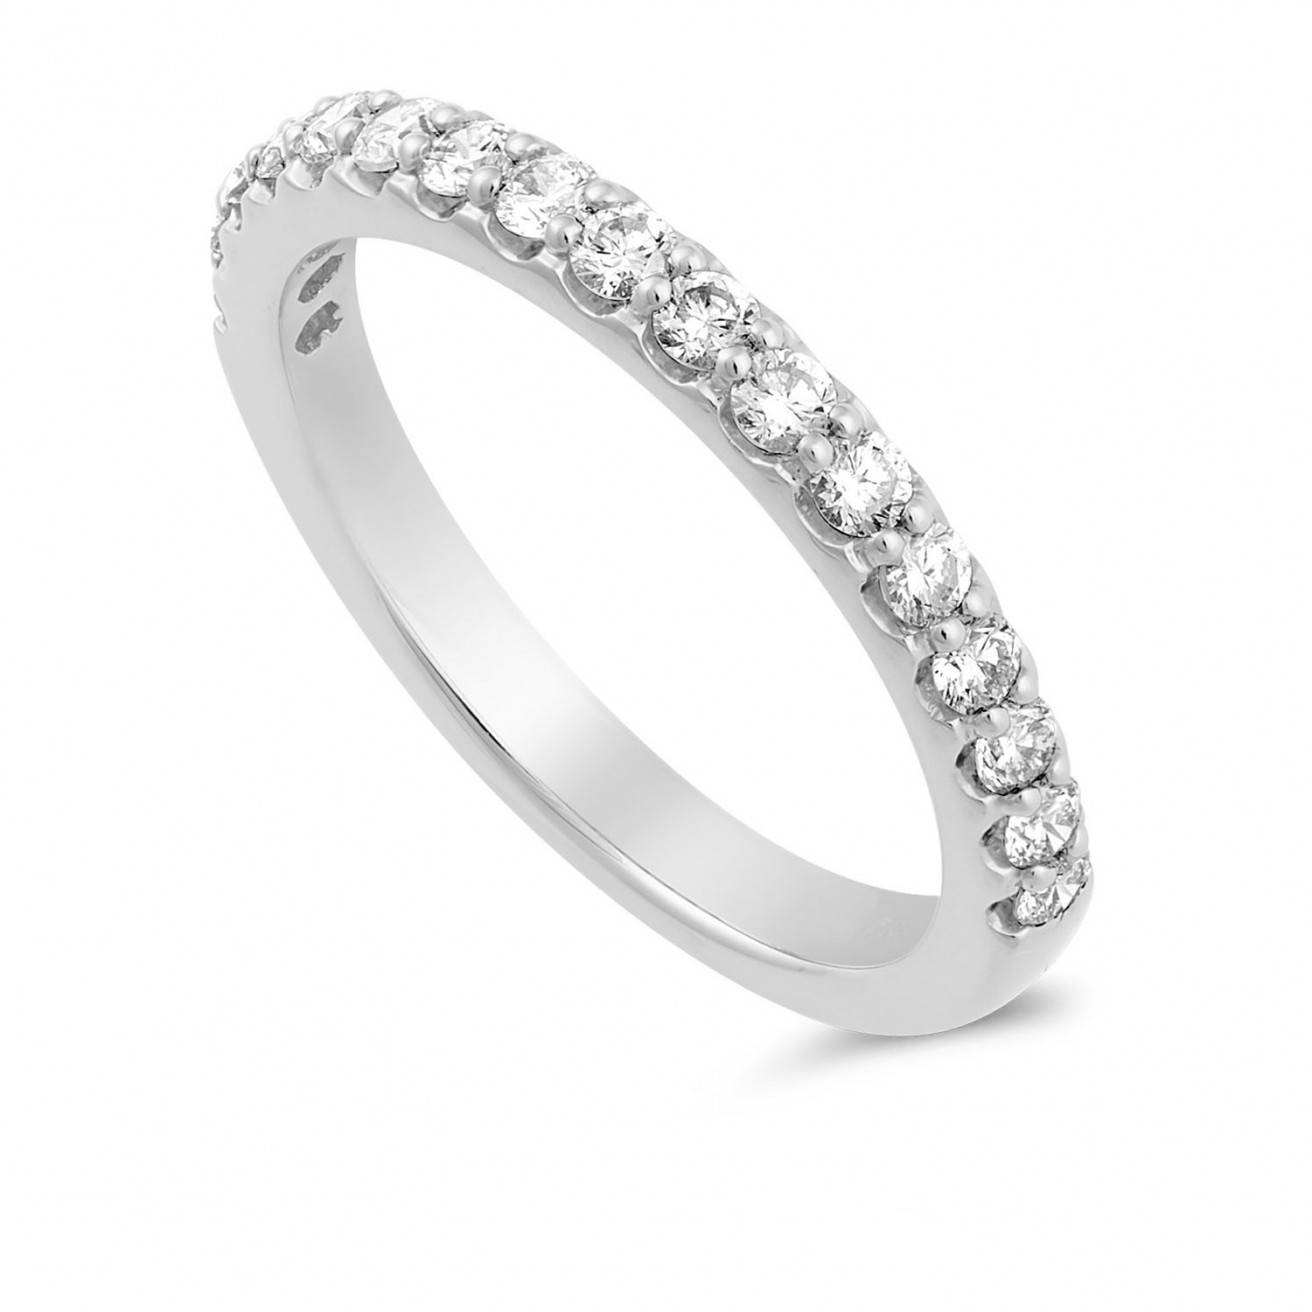 Buy Platinum Wedding Bands Online – Fraser Hart Inside Latest Platinum Wedding Band With Diamonds (View 5 of 15)